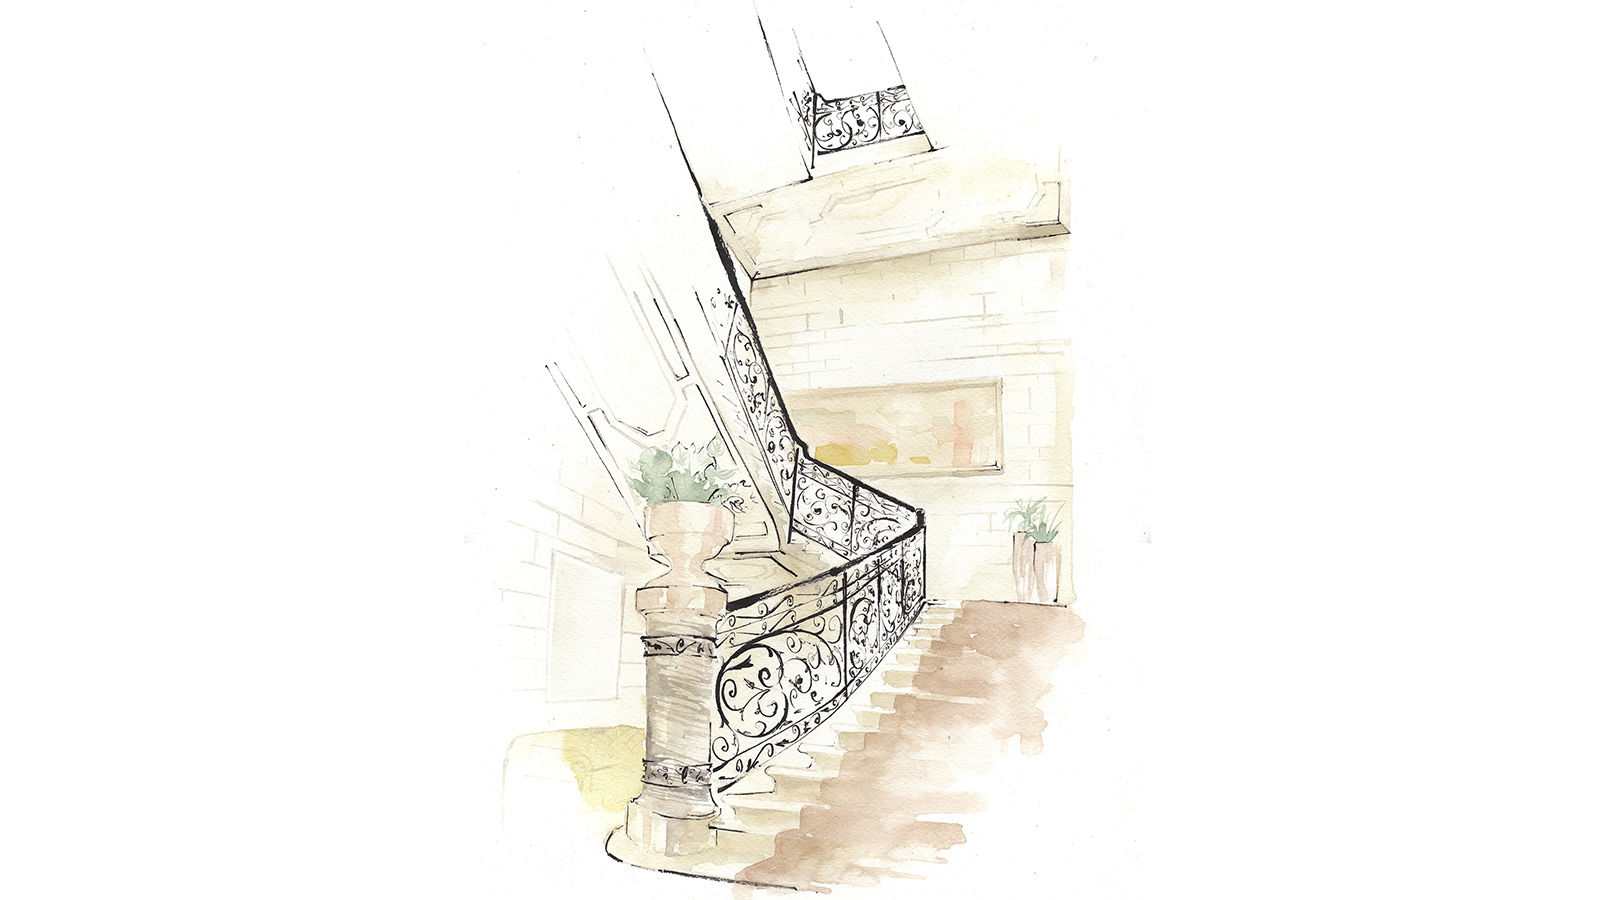 The iconic staircase illustration